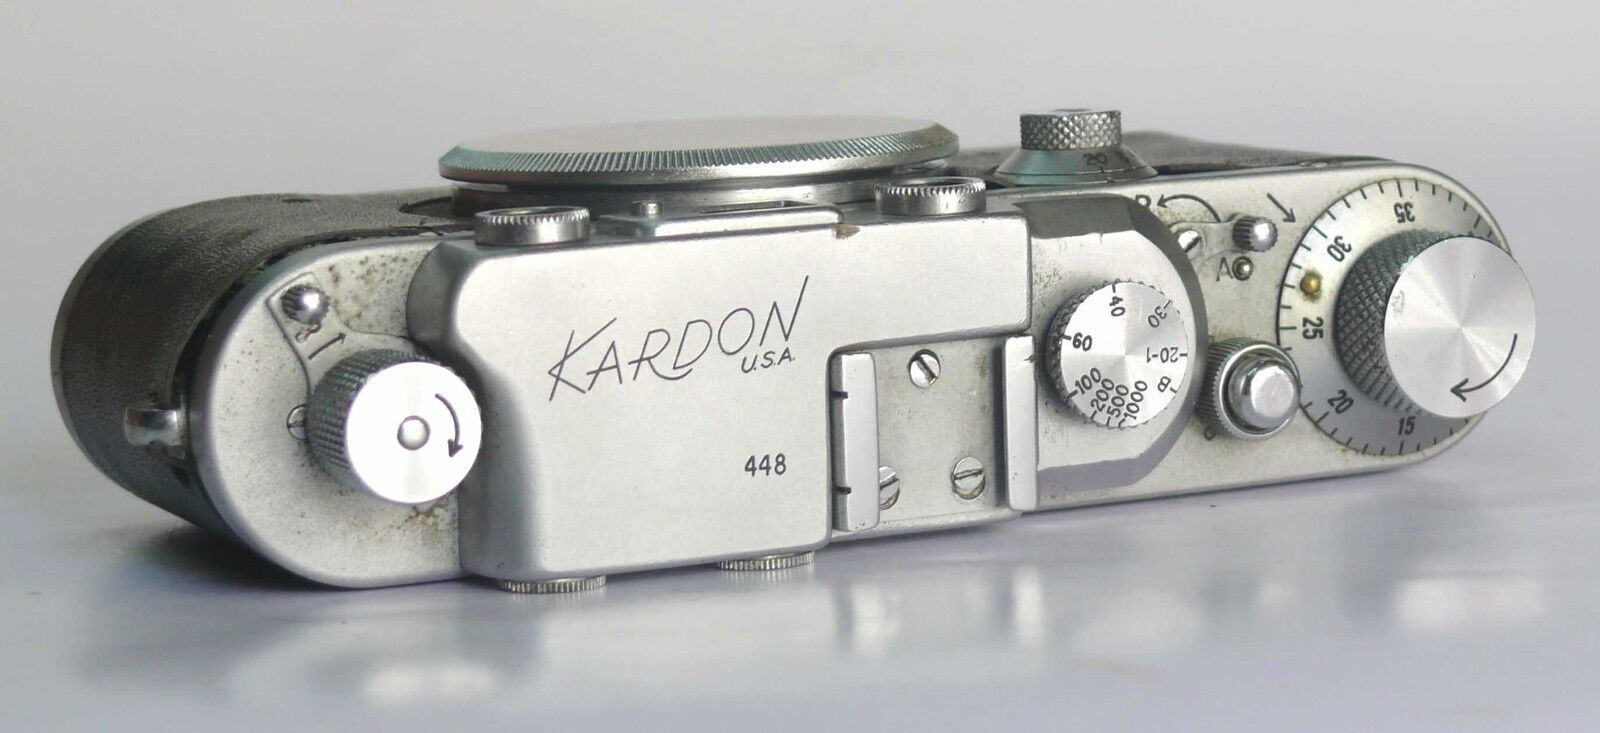 RARE Kardon Rangerfinder 35mm camera VERY FEW MADE #SERIAL NO - 448